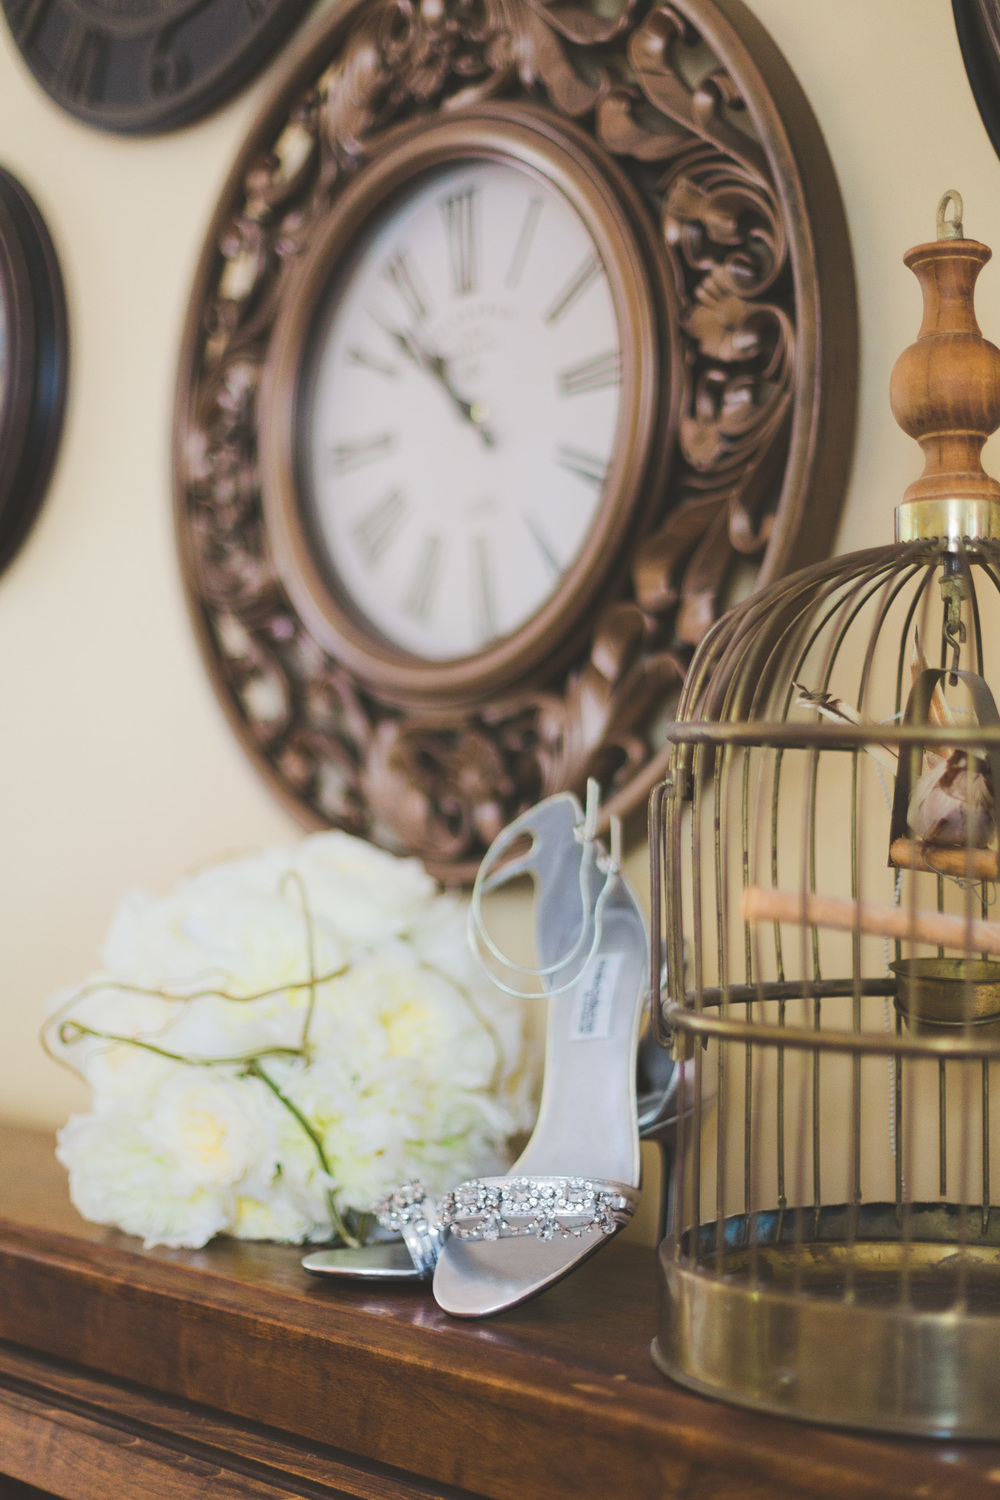 Wedding-Clock-Theme